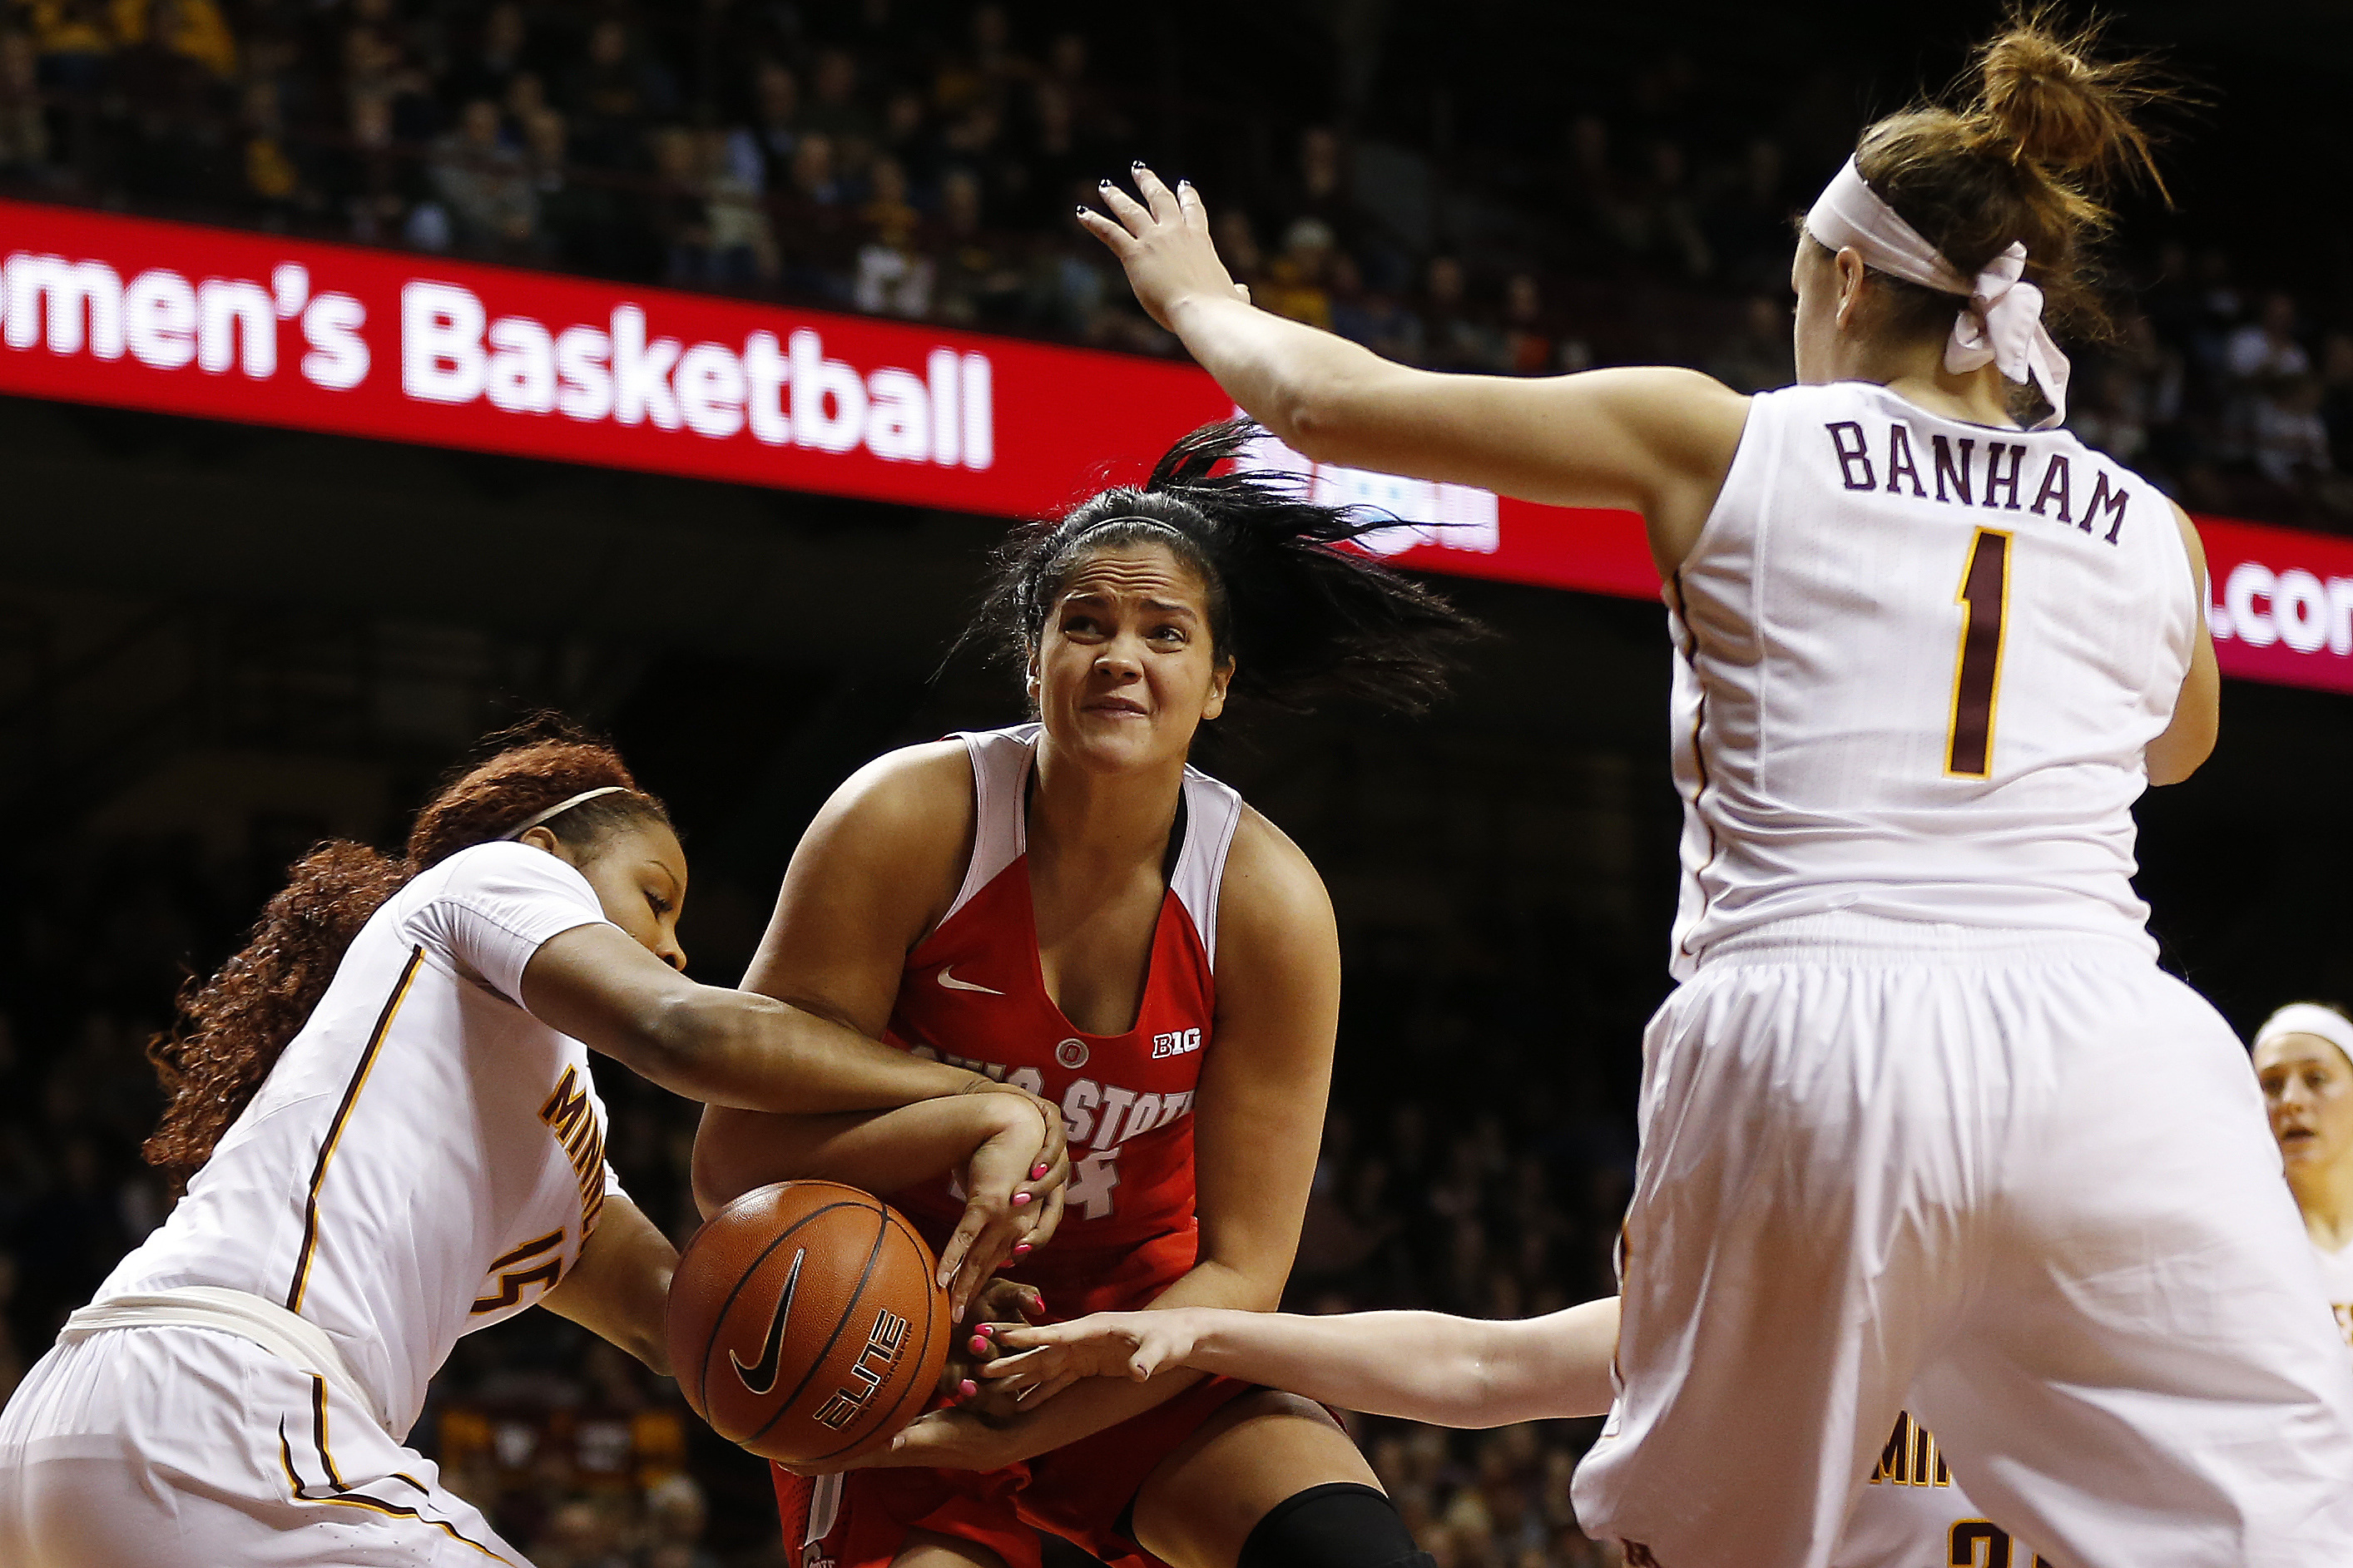 Ohio State forward Makayla Waterman, center, tries to hang onto the ball against Minnesota guard Allina Starr (15) in the first half of an NCAA college basketball game Wednesday, Feb. 24, 2016 in Minneapolis. (AP Photo/Stacy Bengs)